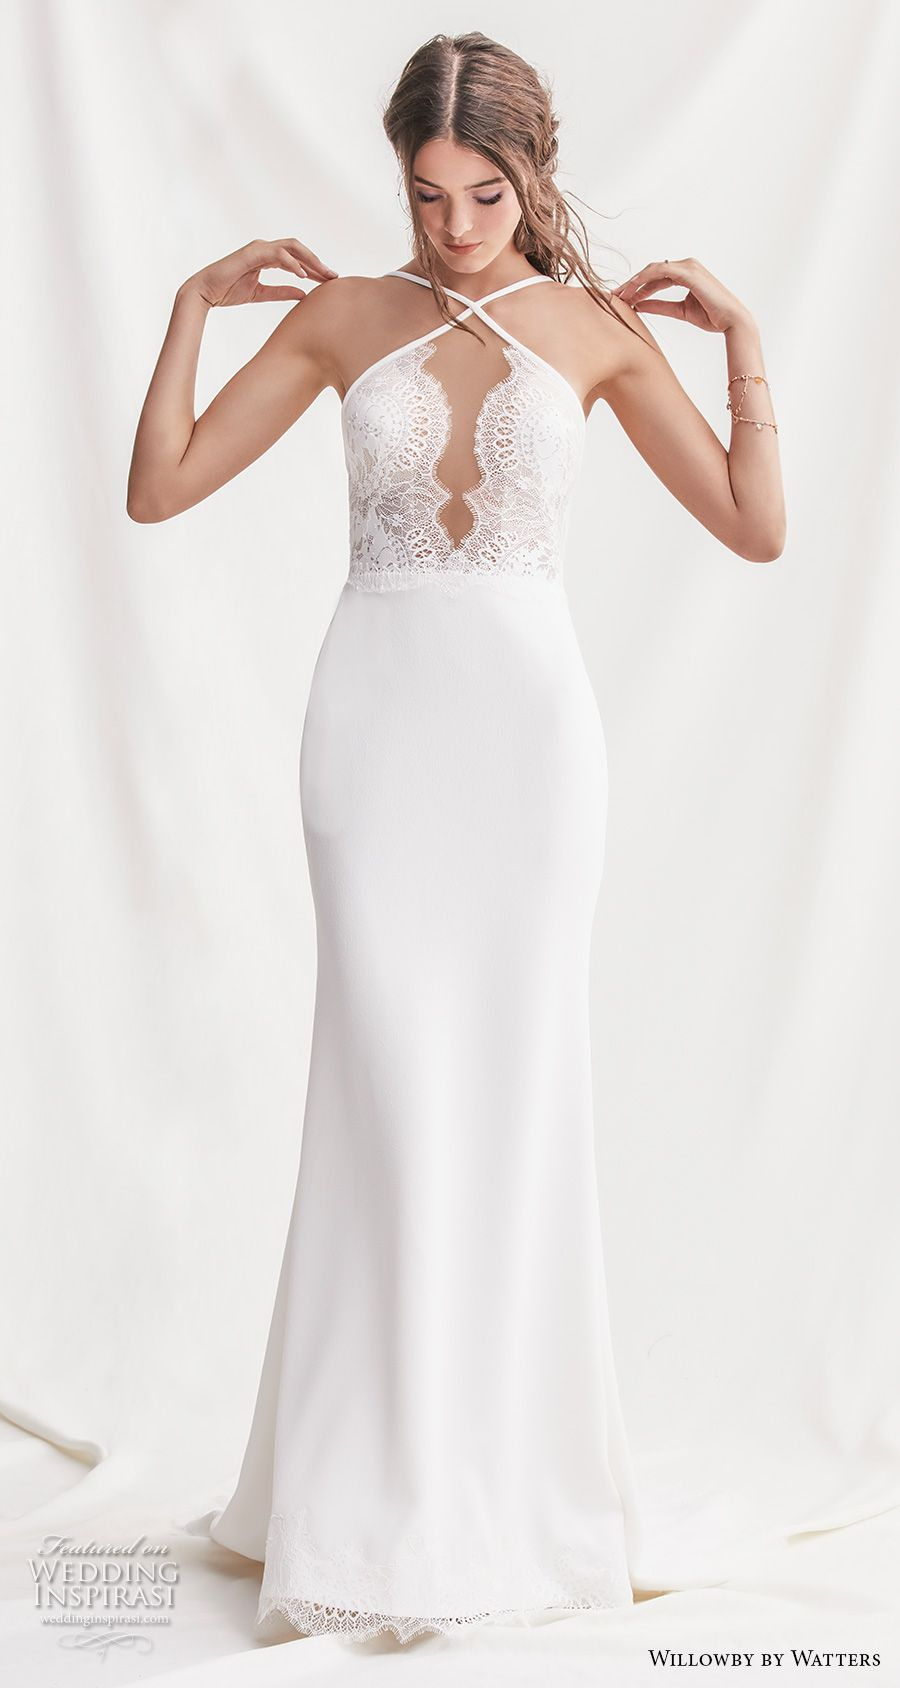 Willowby by watters spring wedding dresses wedding dresses